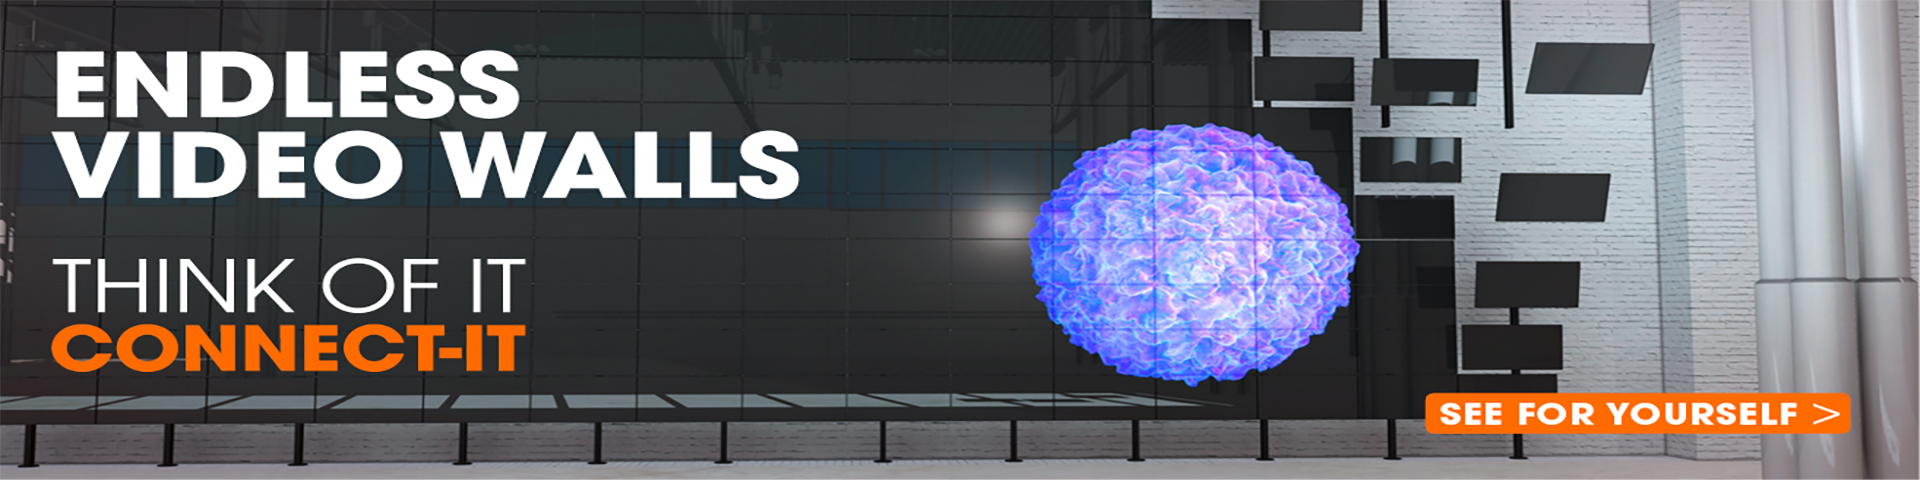 Connect-it universal video wall solutions